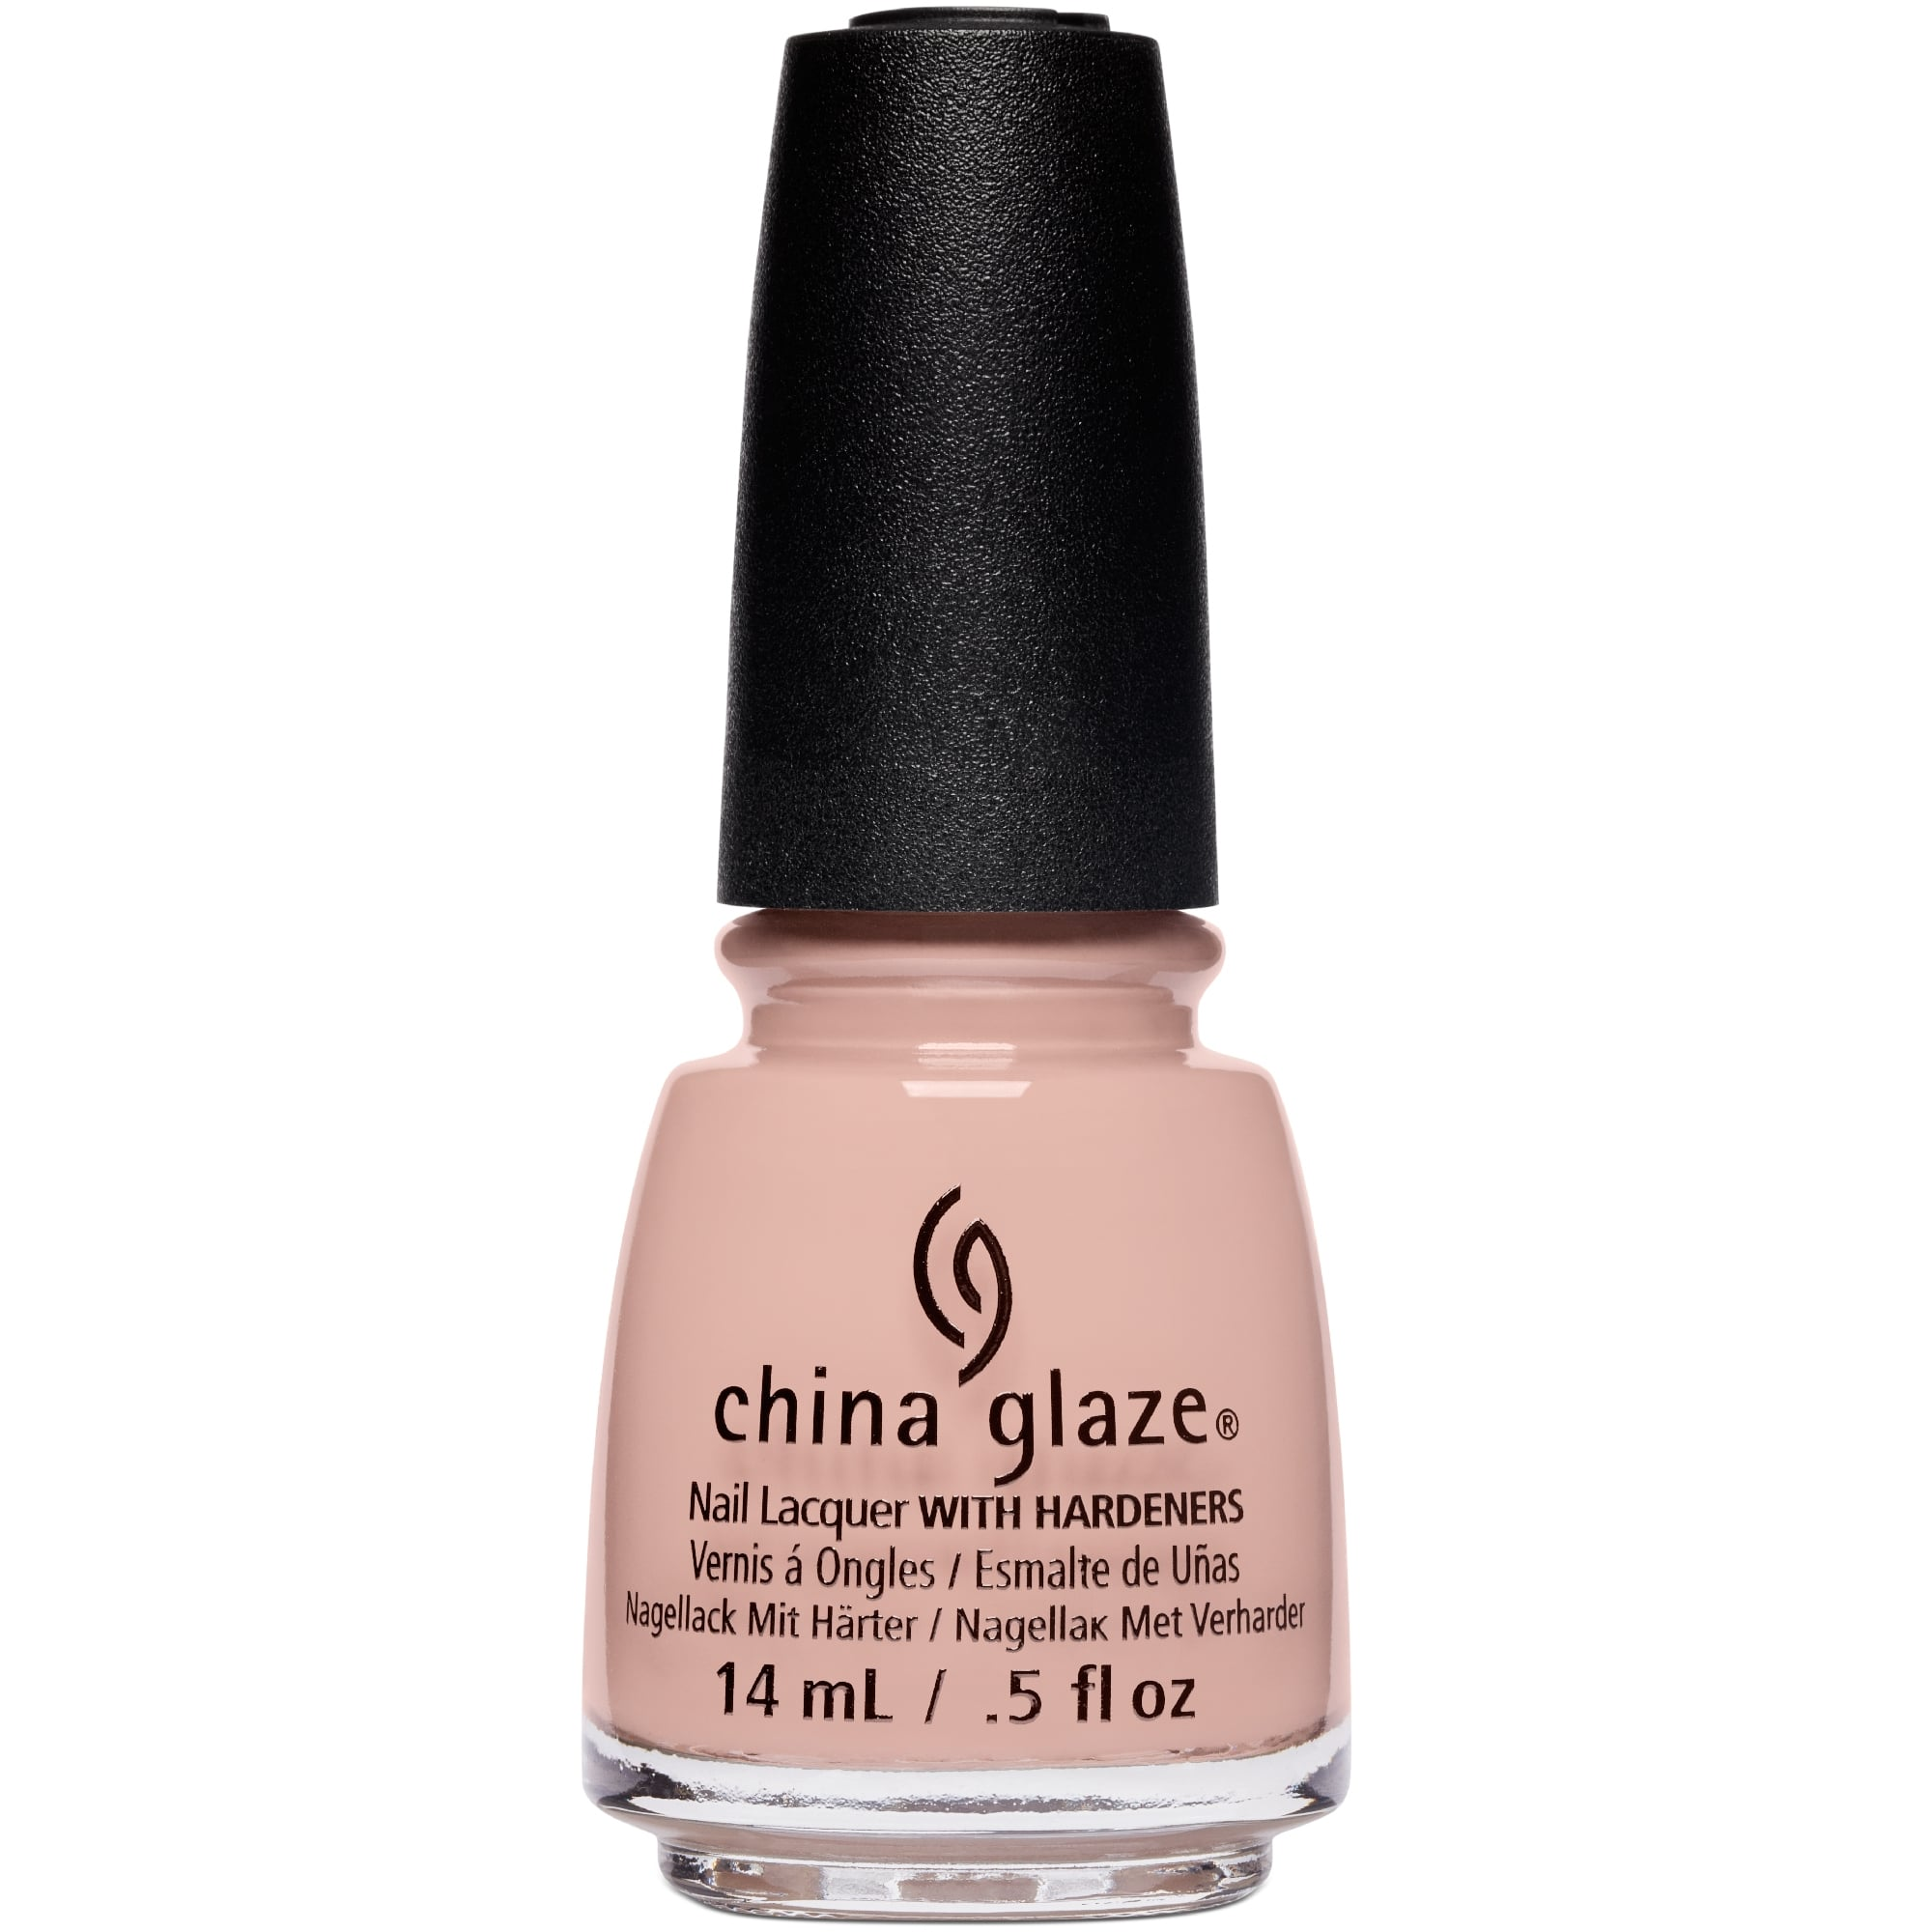 China Glaze Nudes Spring 2017 Nail Polish Collection Note To Selfie – Collection Note